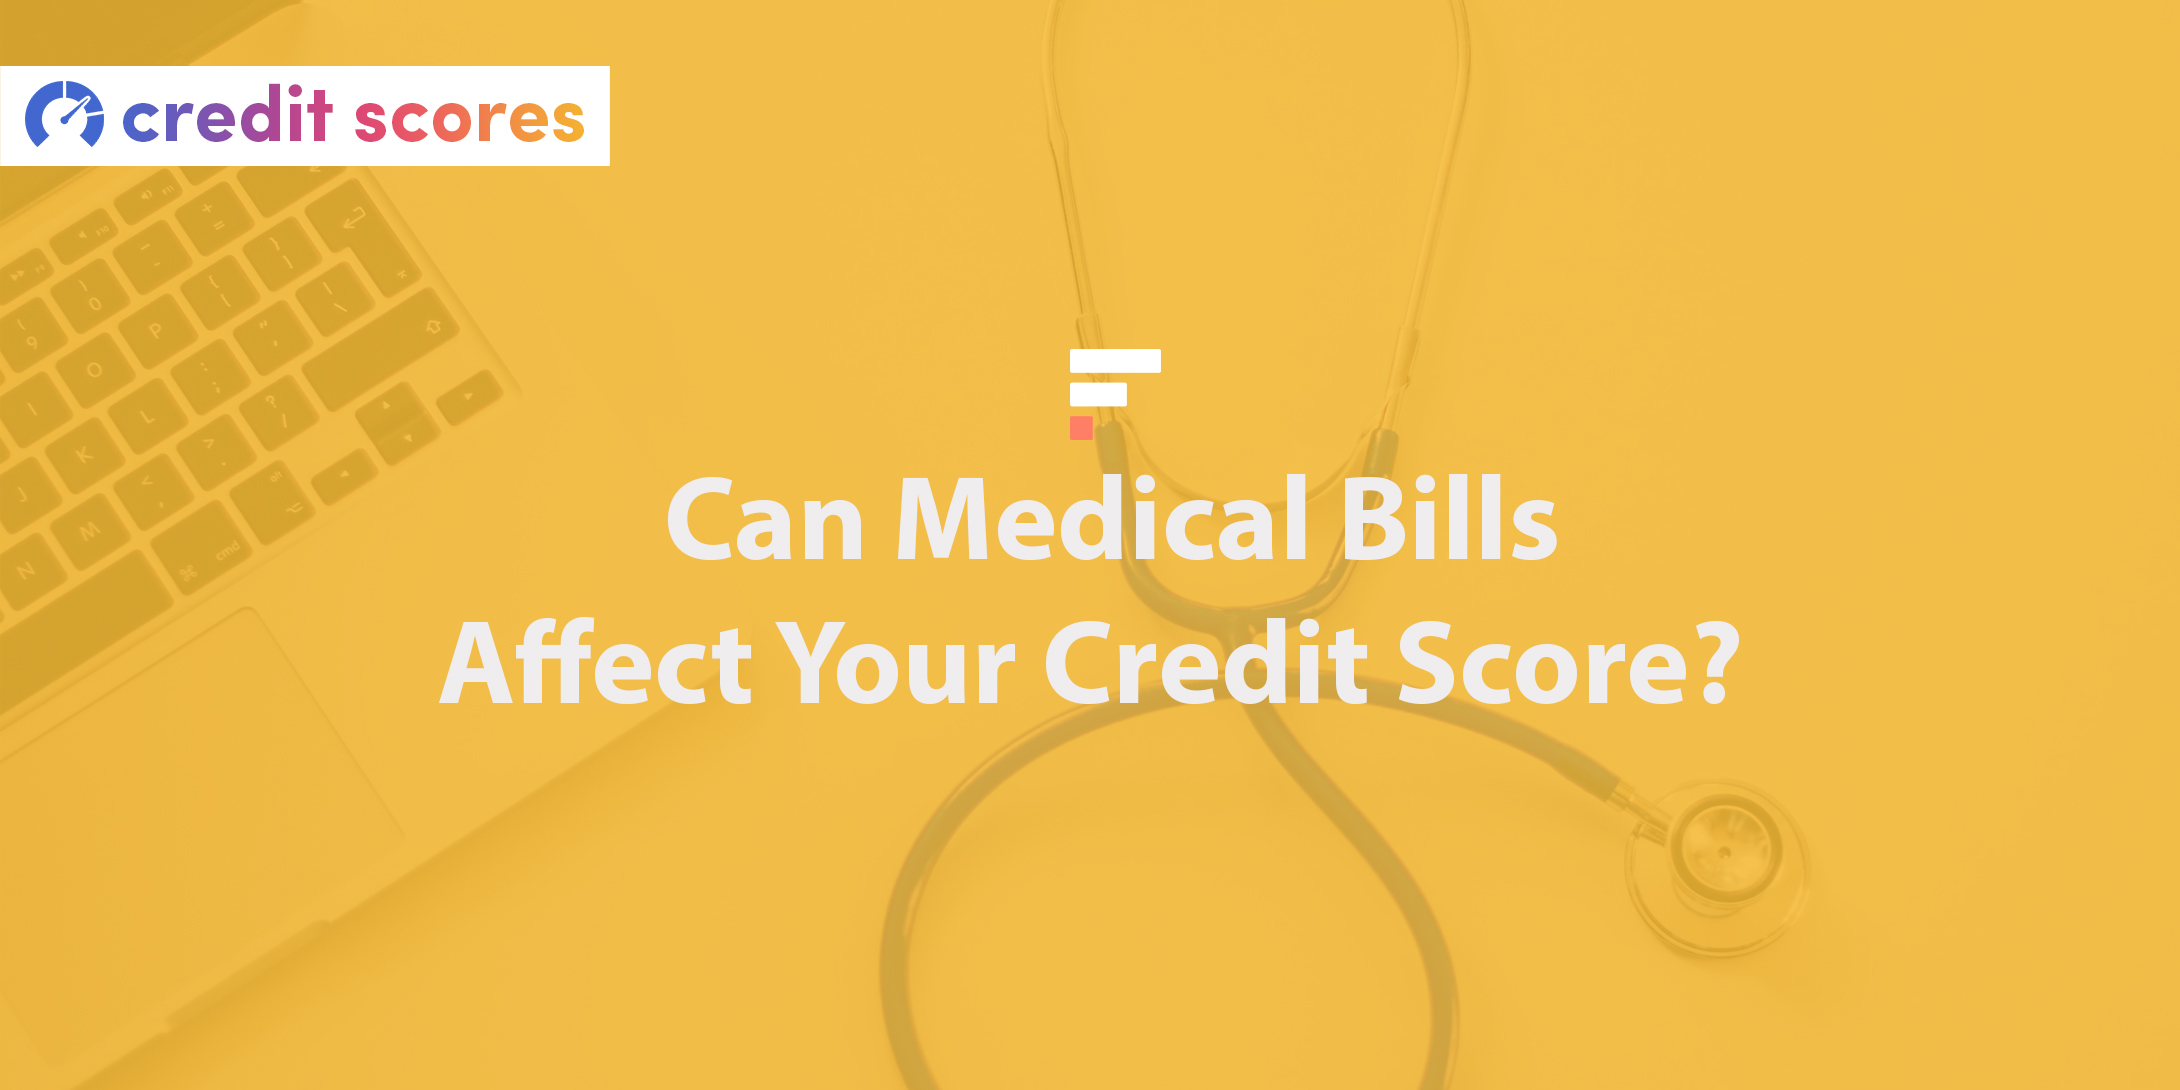 Can medical bills affect your credit score?